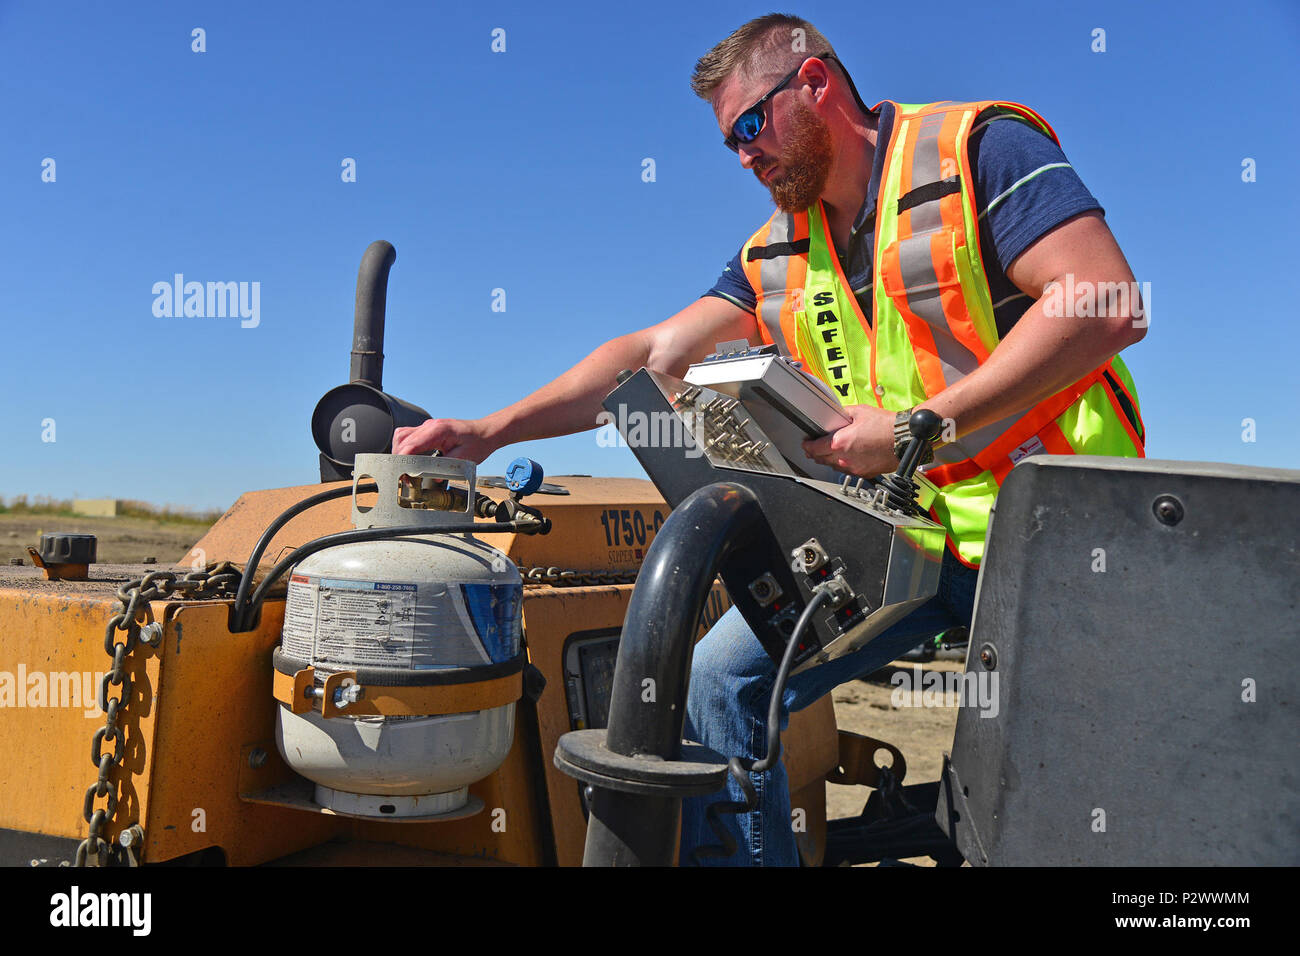 Jason Webb, 341st Missile Wing occupational safety and health specialist, inspects a propane tank Aug. 1, 2016, at Malmstrom Air Force Base, Mont. The safety office performs random spot inspections focusing on identifying preventable workplace hazards that could potentially cause injury or death to a member. (U.S. Air Force photo/Airman 1st Class Daniel Brosam) Stock Photo